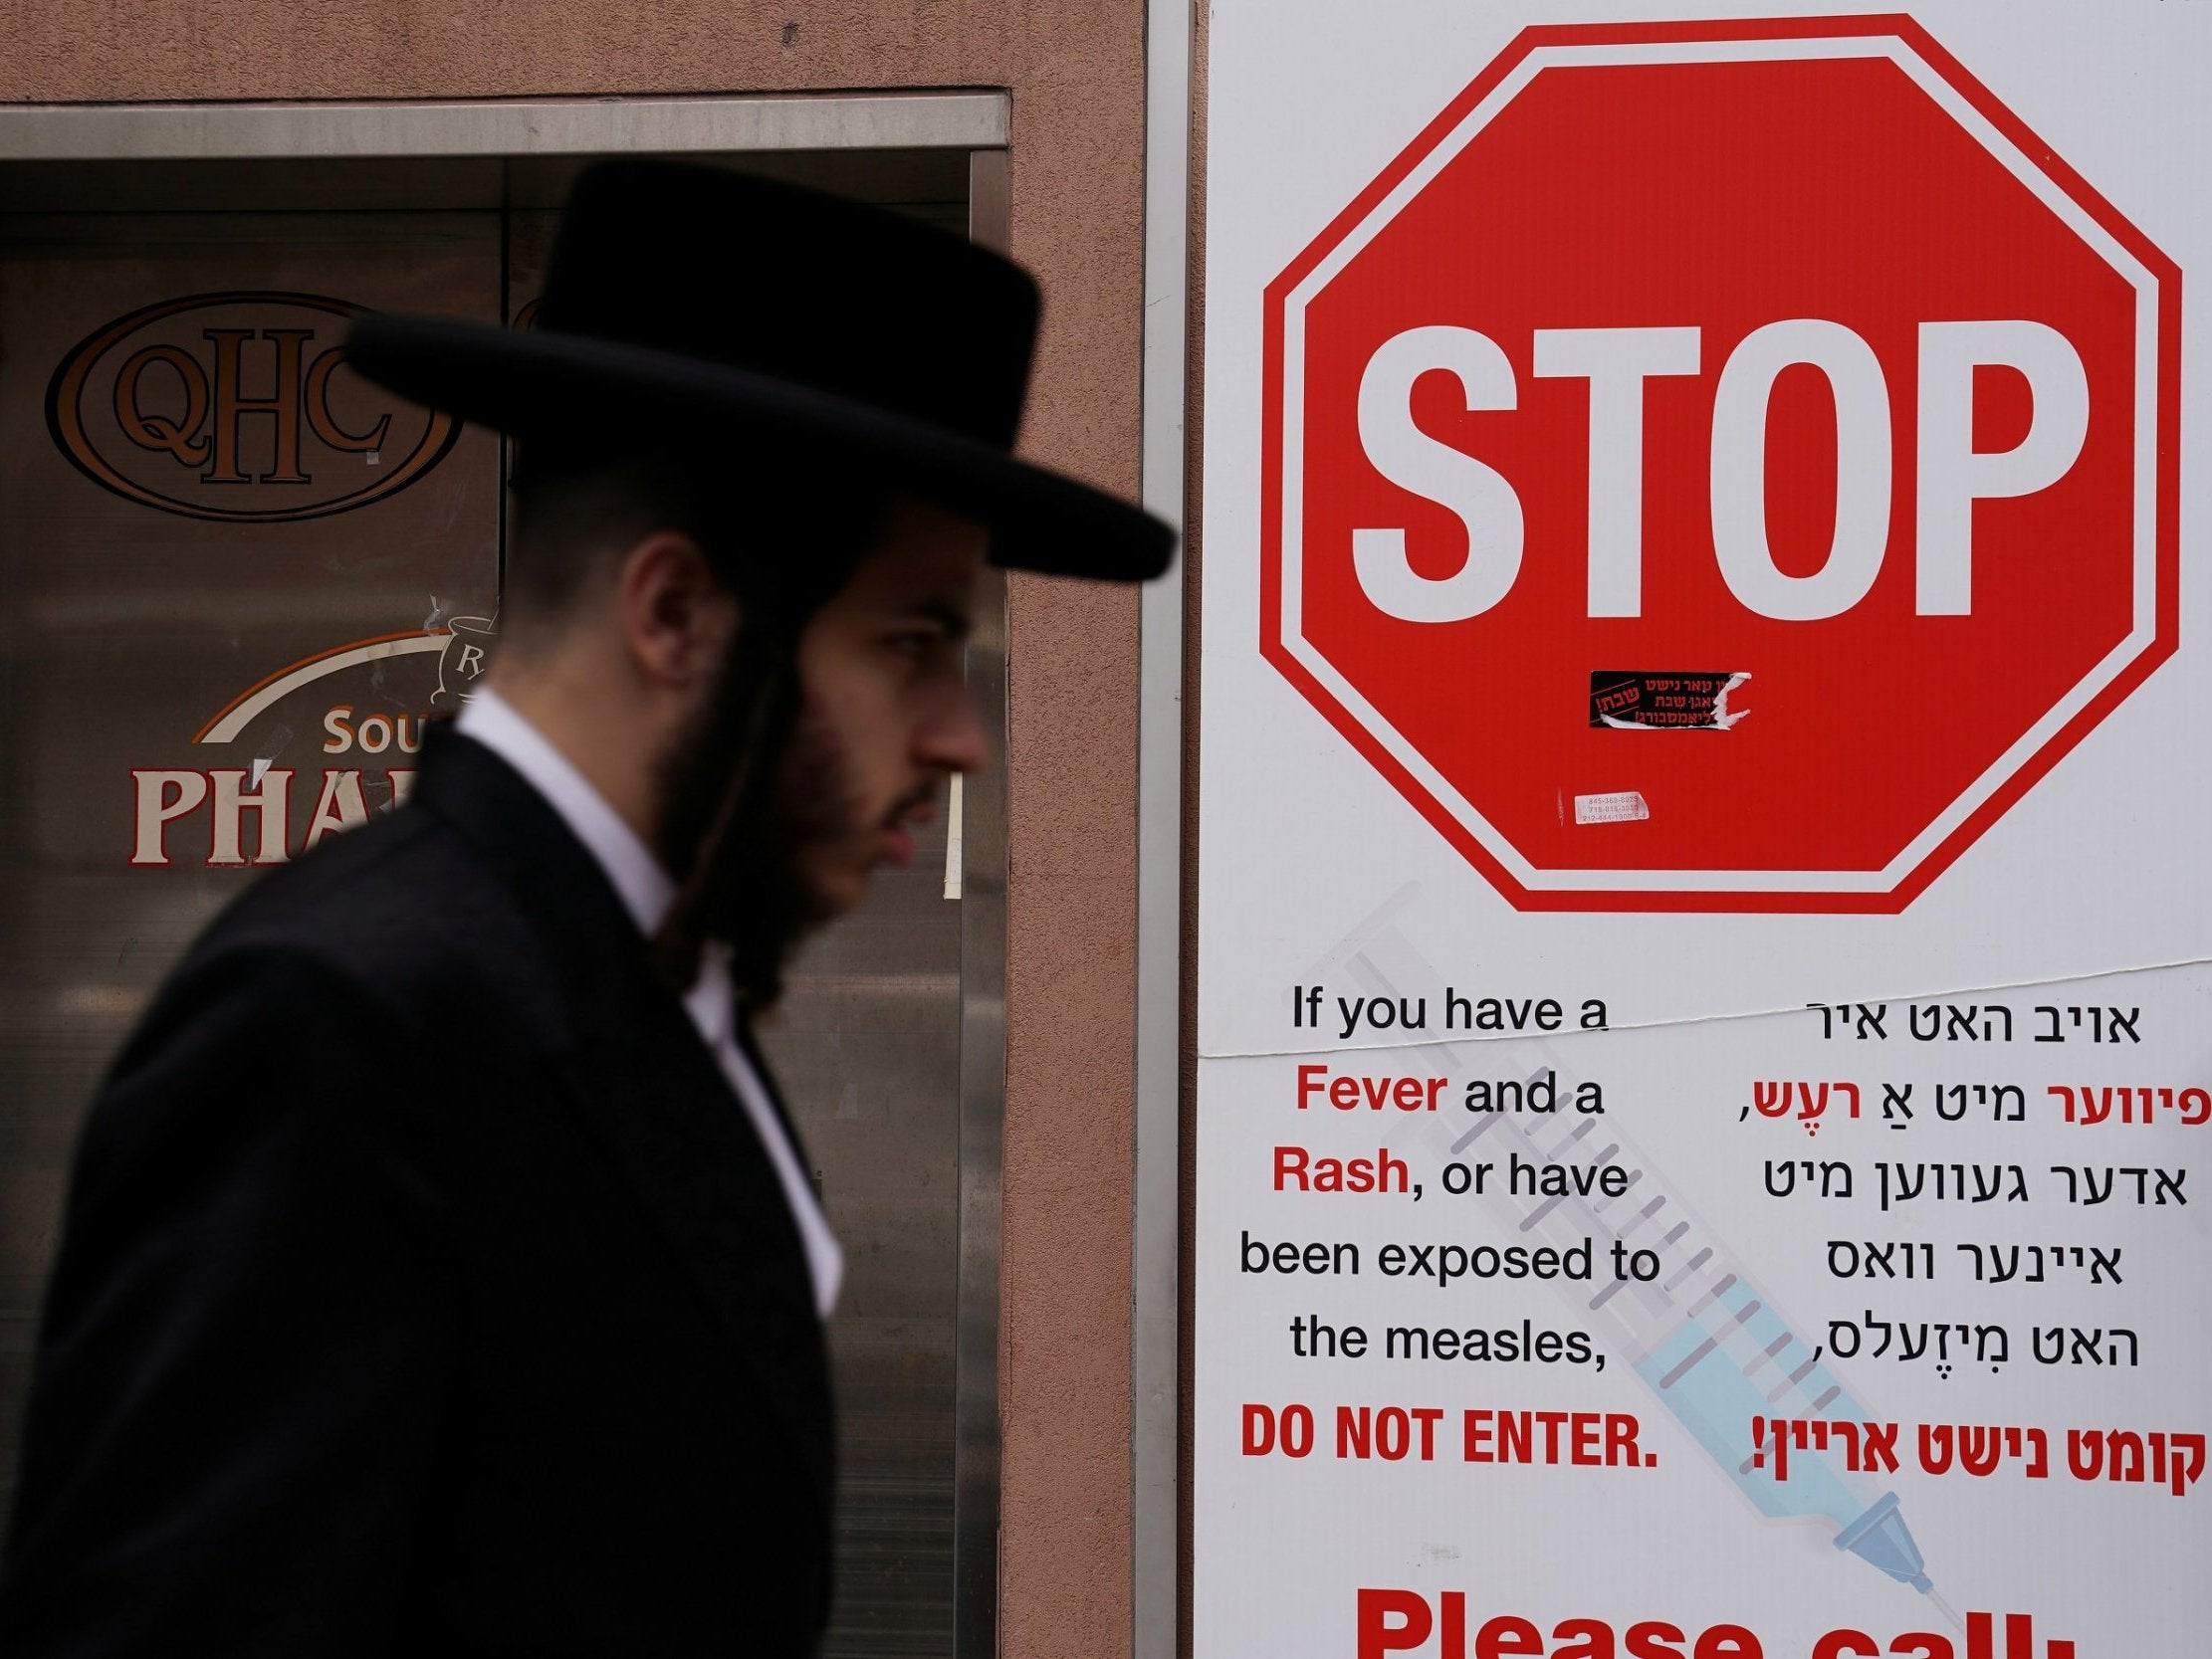 Anti-vaccine rally in New York attracts hundreds of Orthodox